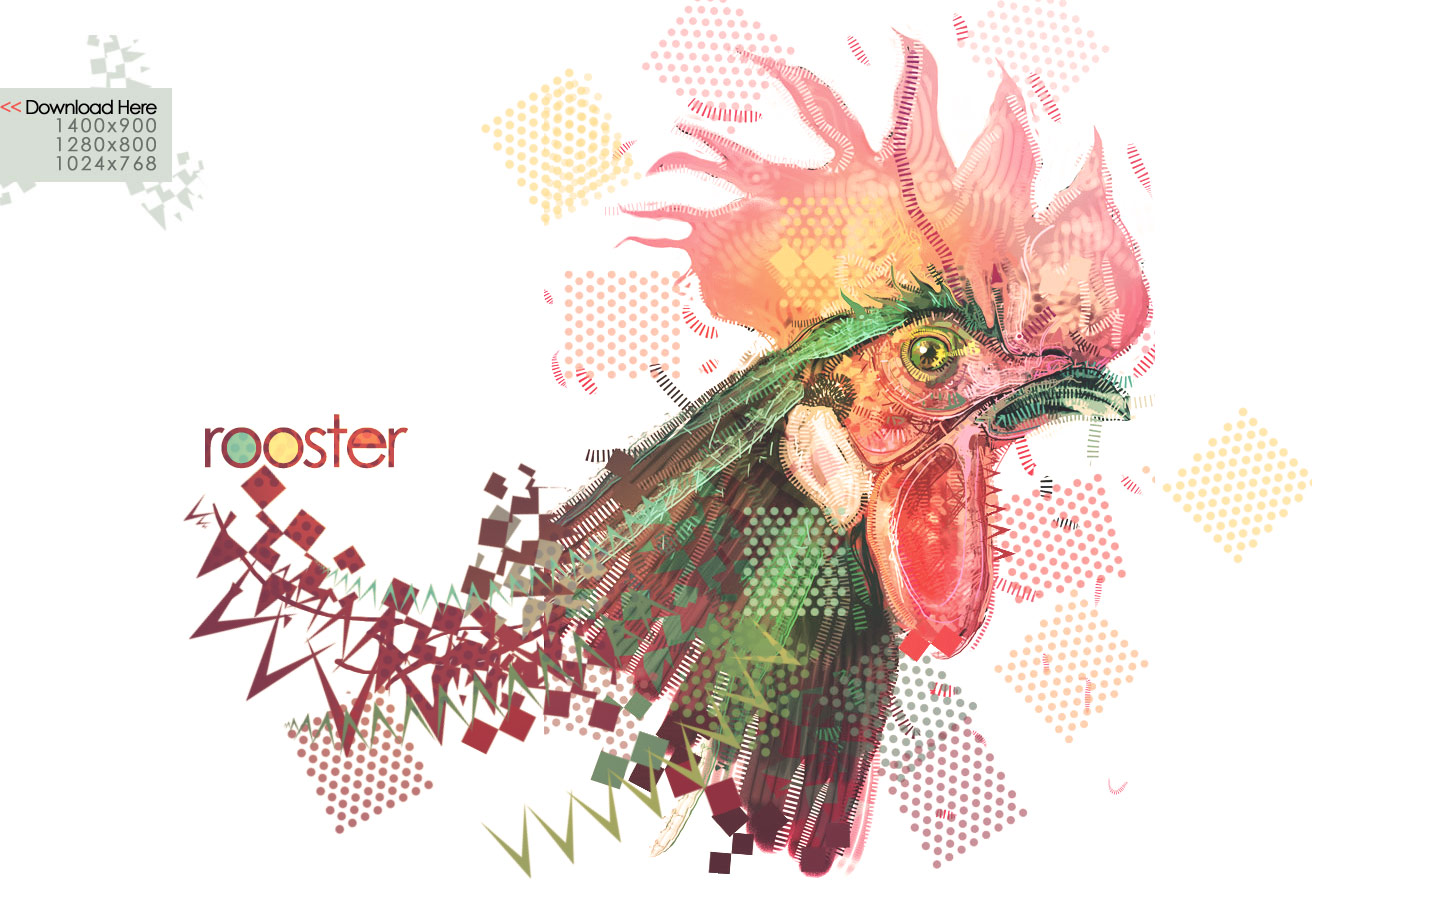 rooster wallpaper by metalsan customization wallpaper animals plants 1440x900